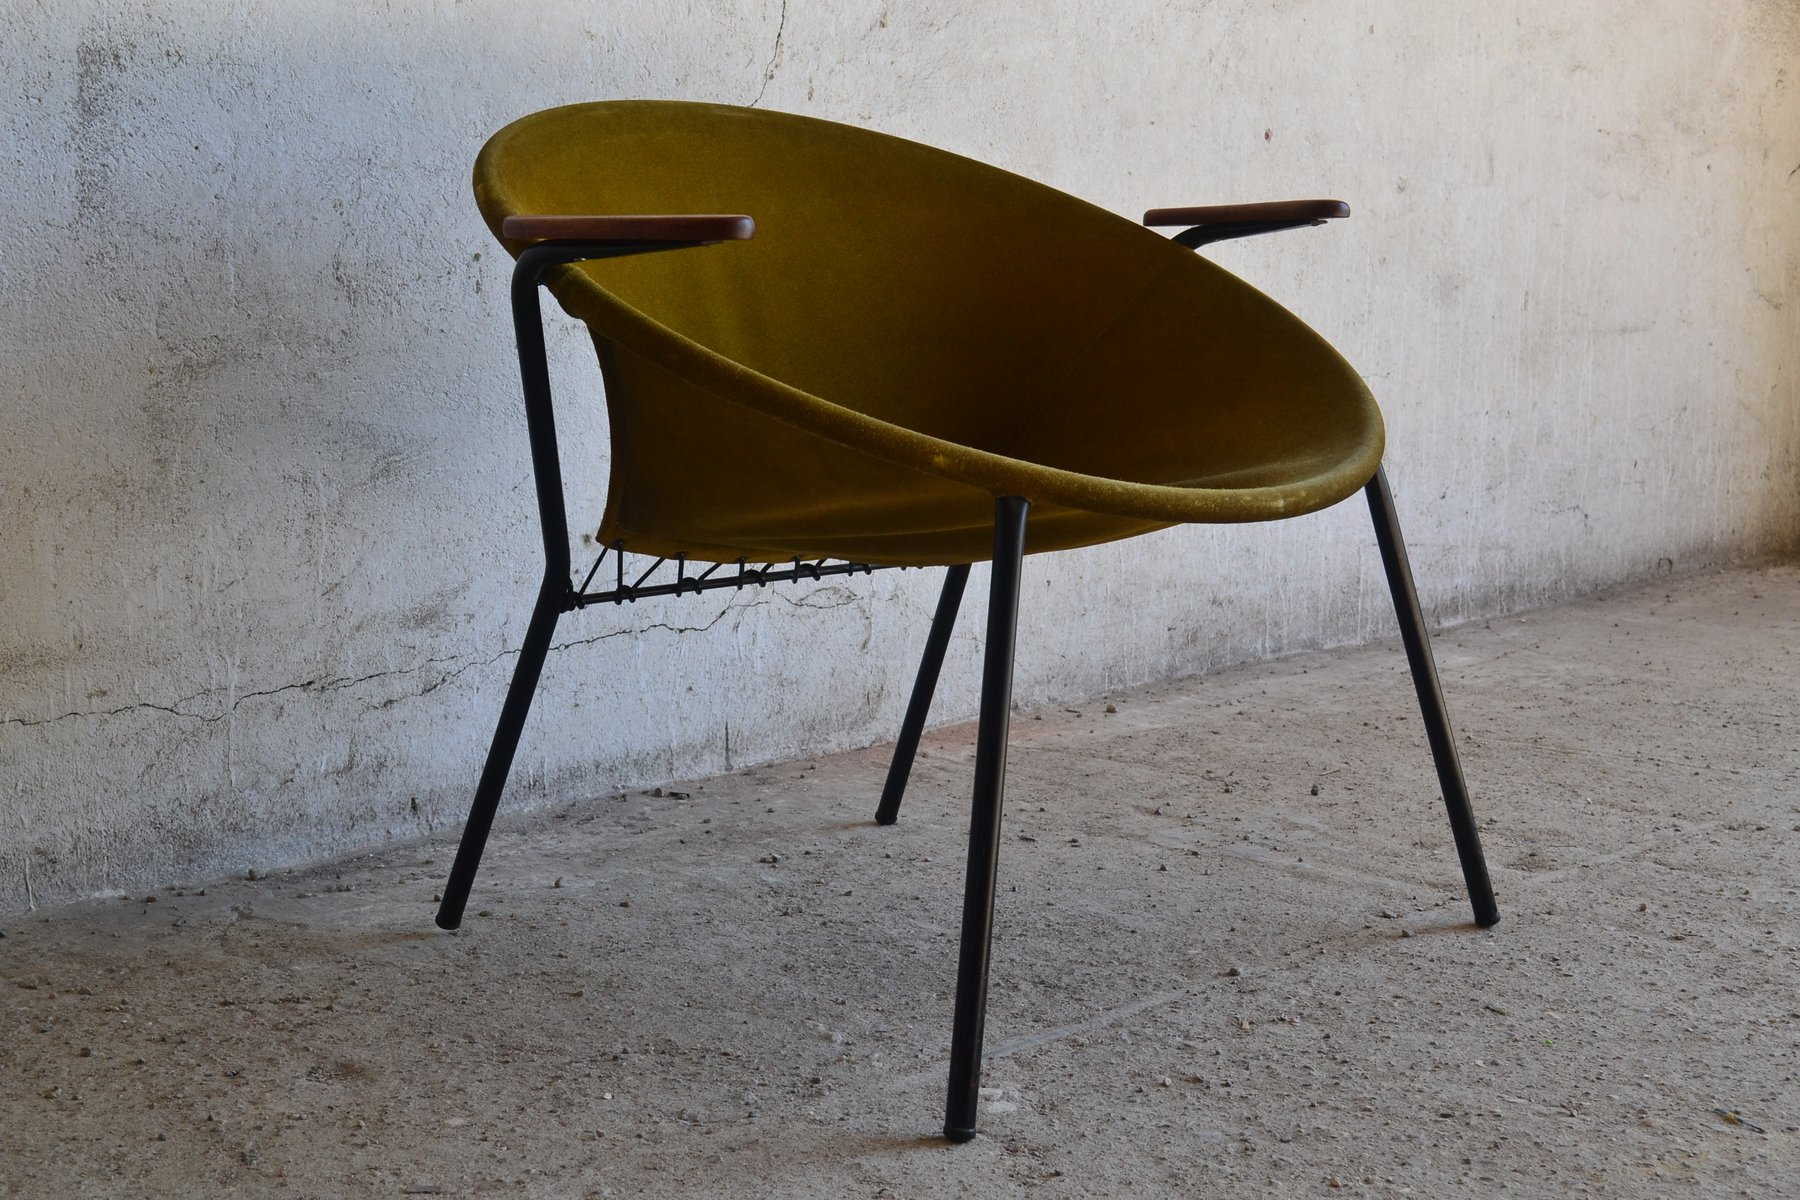 Balloon Chair For Sale Vintage Balloon Chair By Hans Olsen For Lea For Sale At Pamono